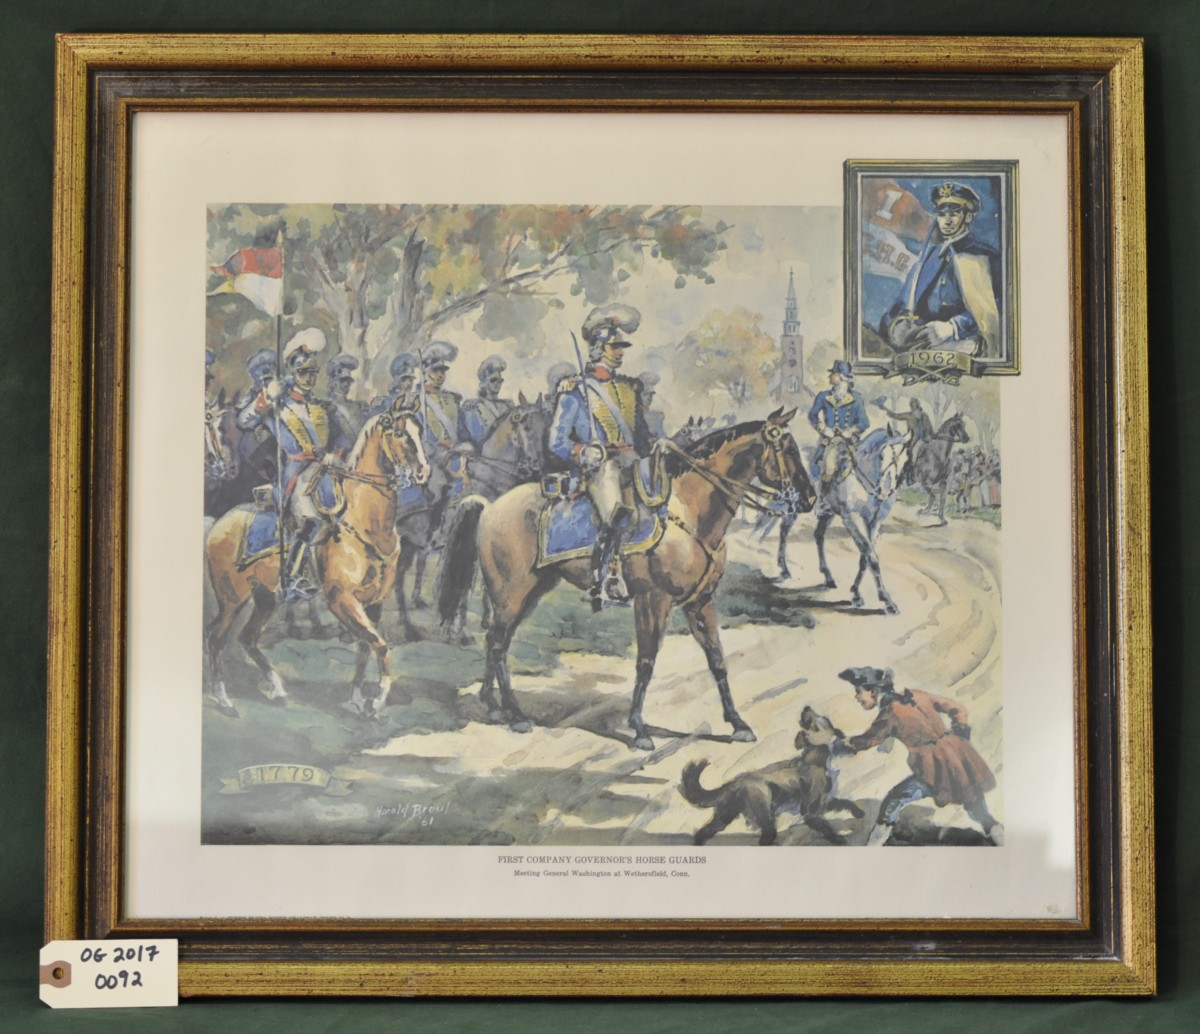 First Company Governor's Horse Guards Meeting General Washington at Wethersfield, Conn. by Harold Breul